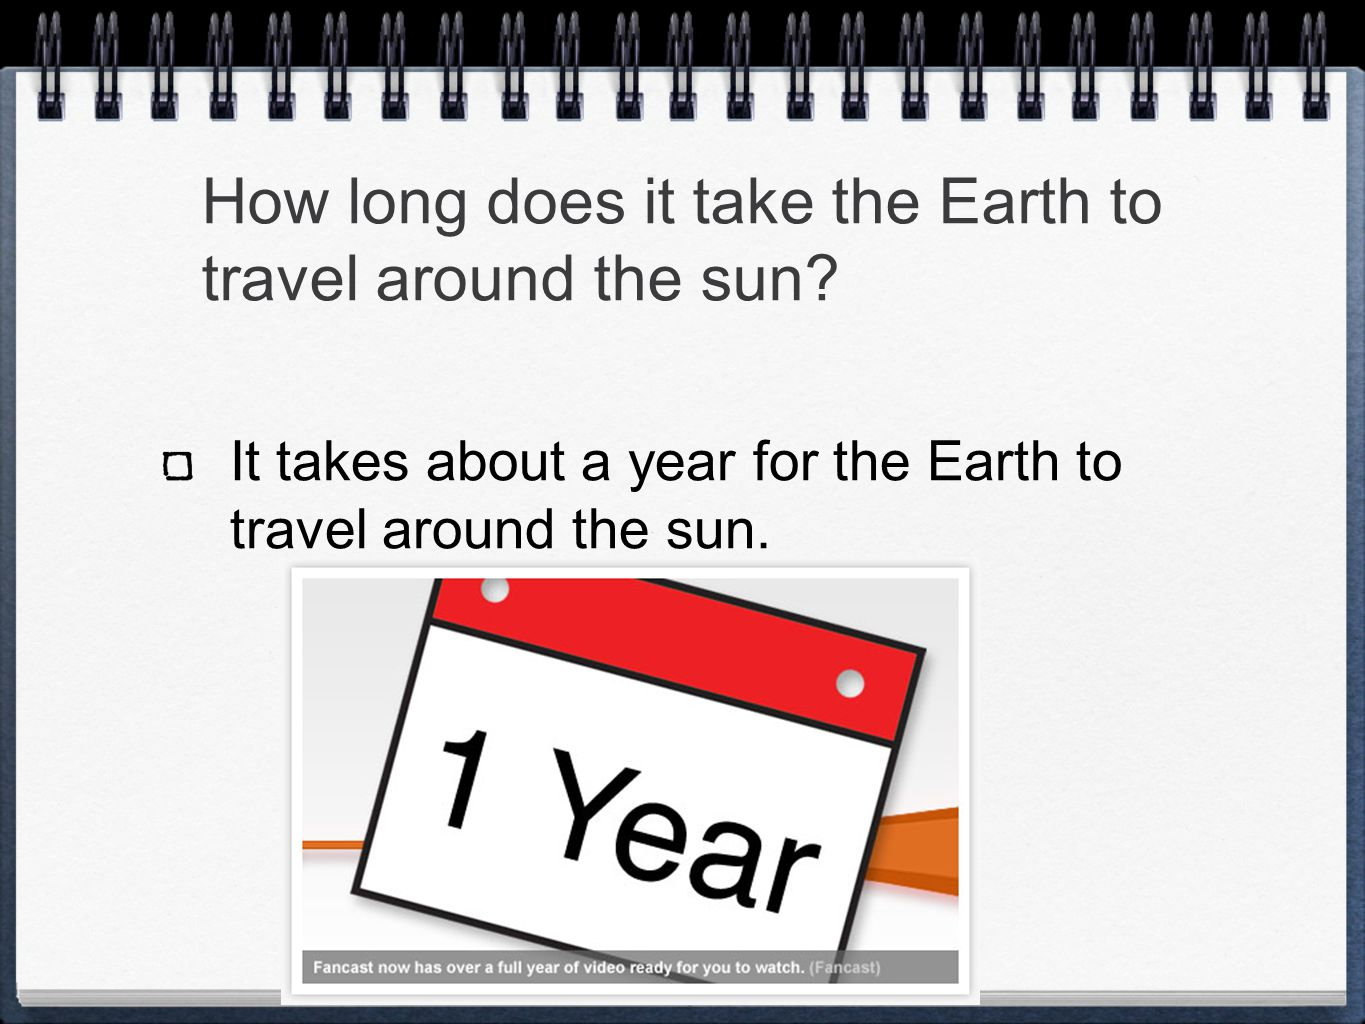 How long does it take the Earth to travel around the sun